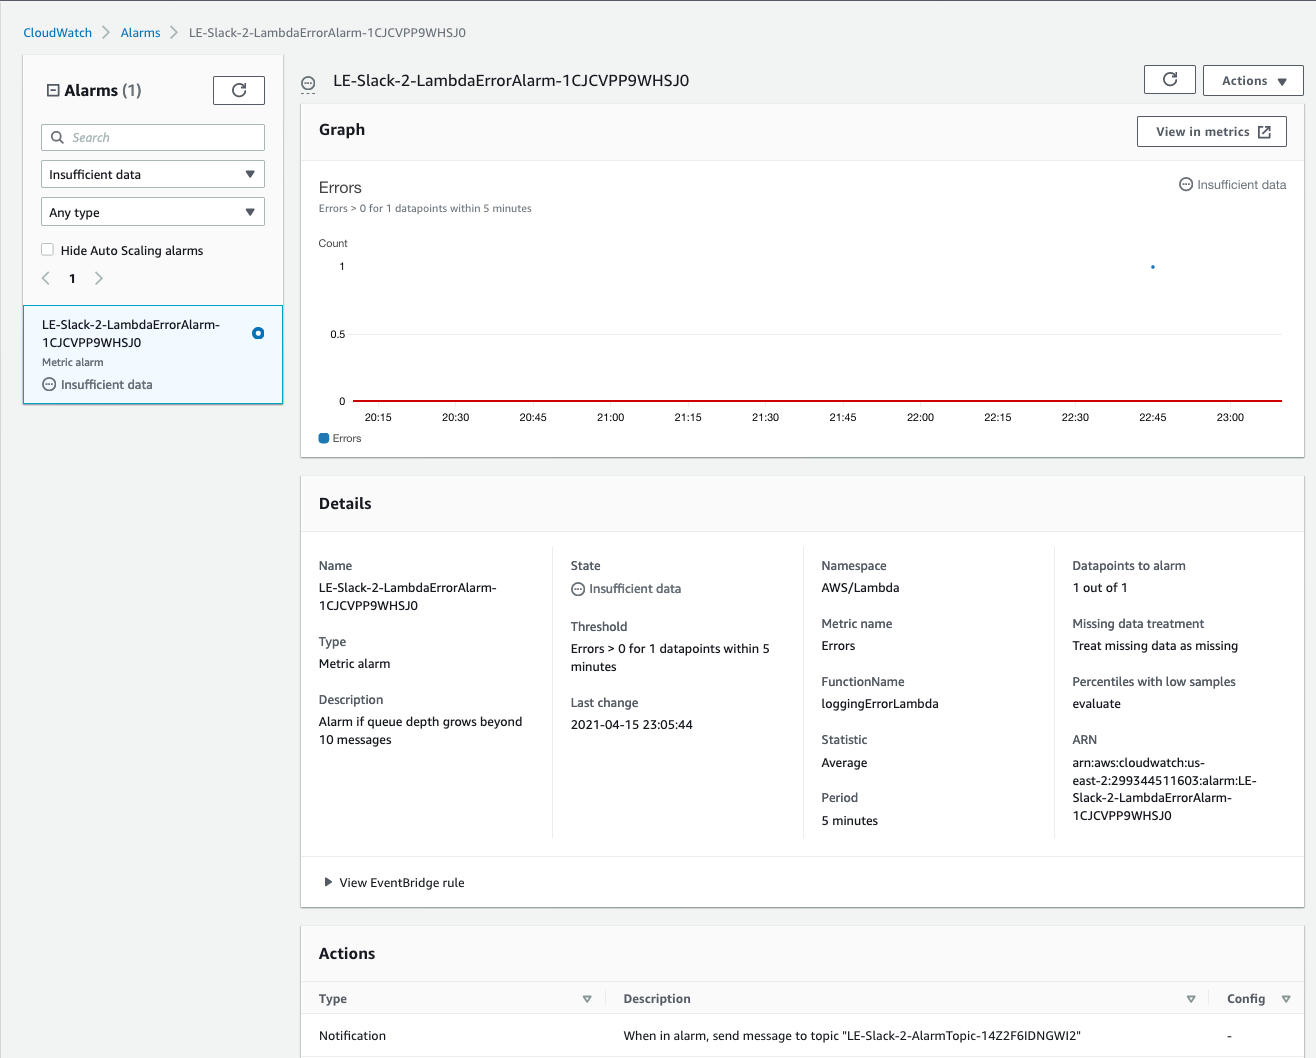 """The CloudWatch metric alarm has a description that says, """"Alarm if queue depth grows beyond 10 messages."""" Other details include state (in this example, Insufficient data), last change, namespace (AWS/Lambda), metric name (Errors), and more."""